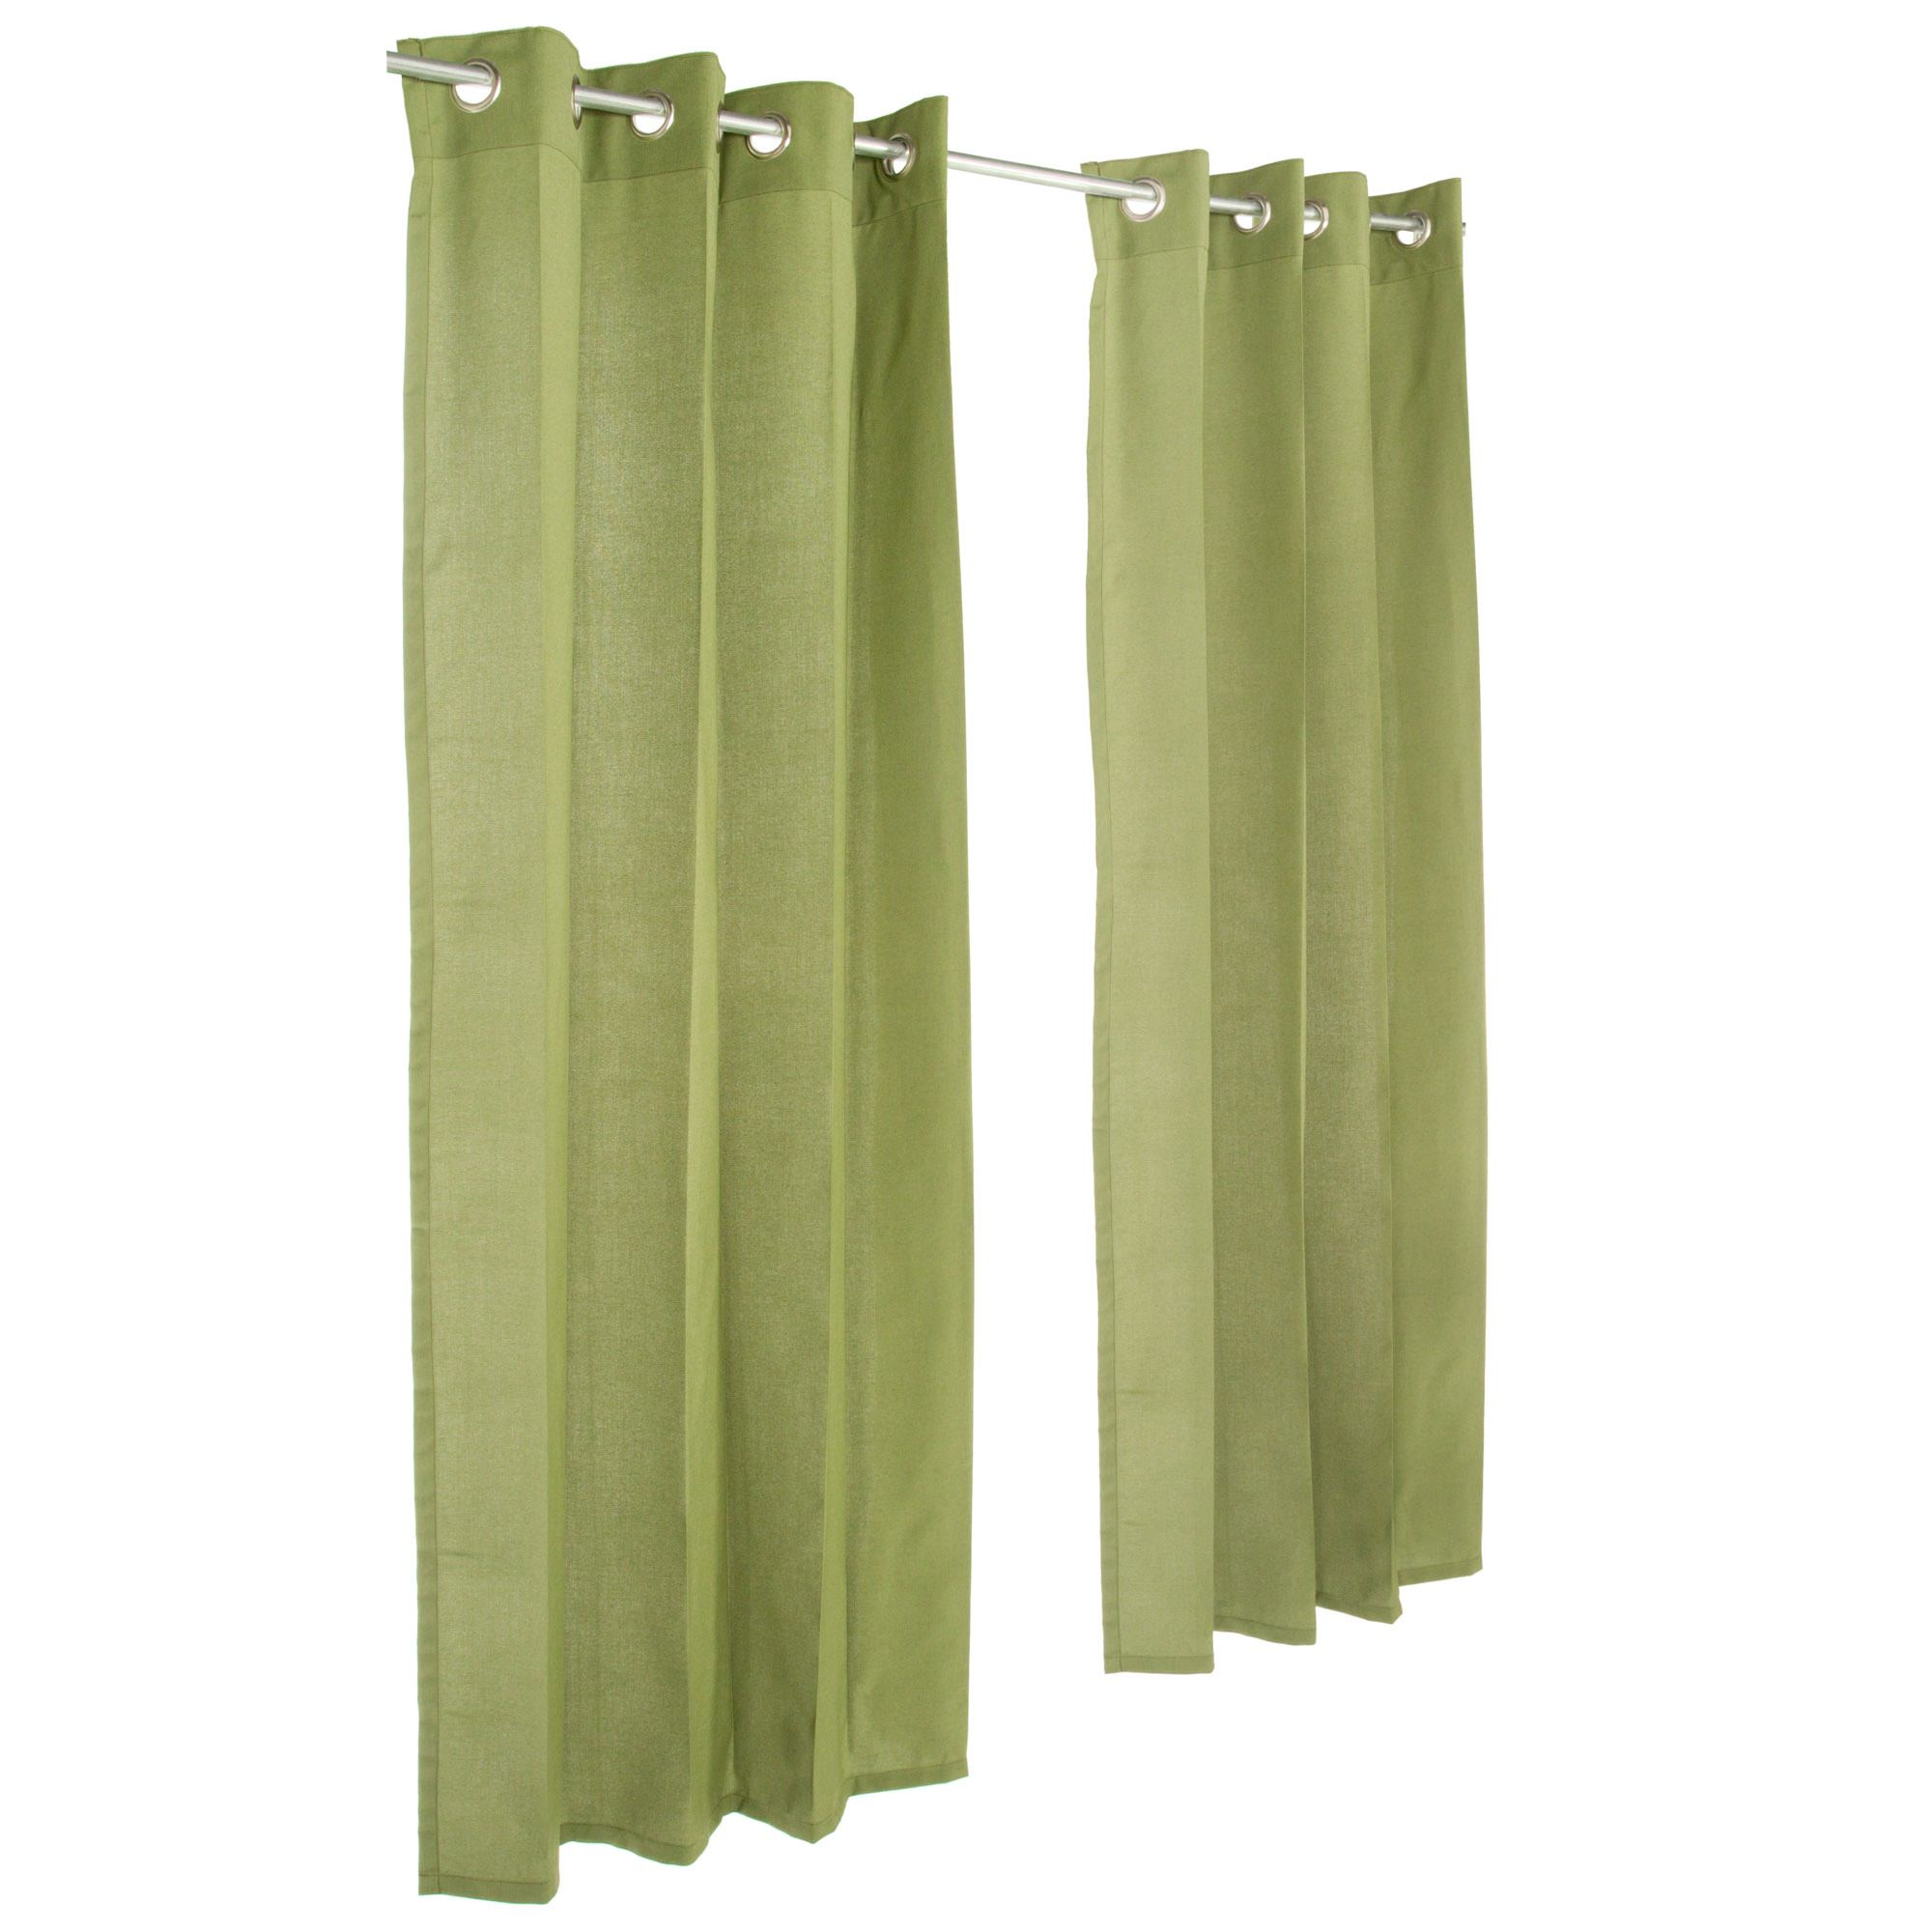 Spectrum Cilantro Grommeted Sunbrella Outdoor Curtains